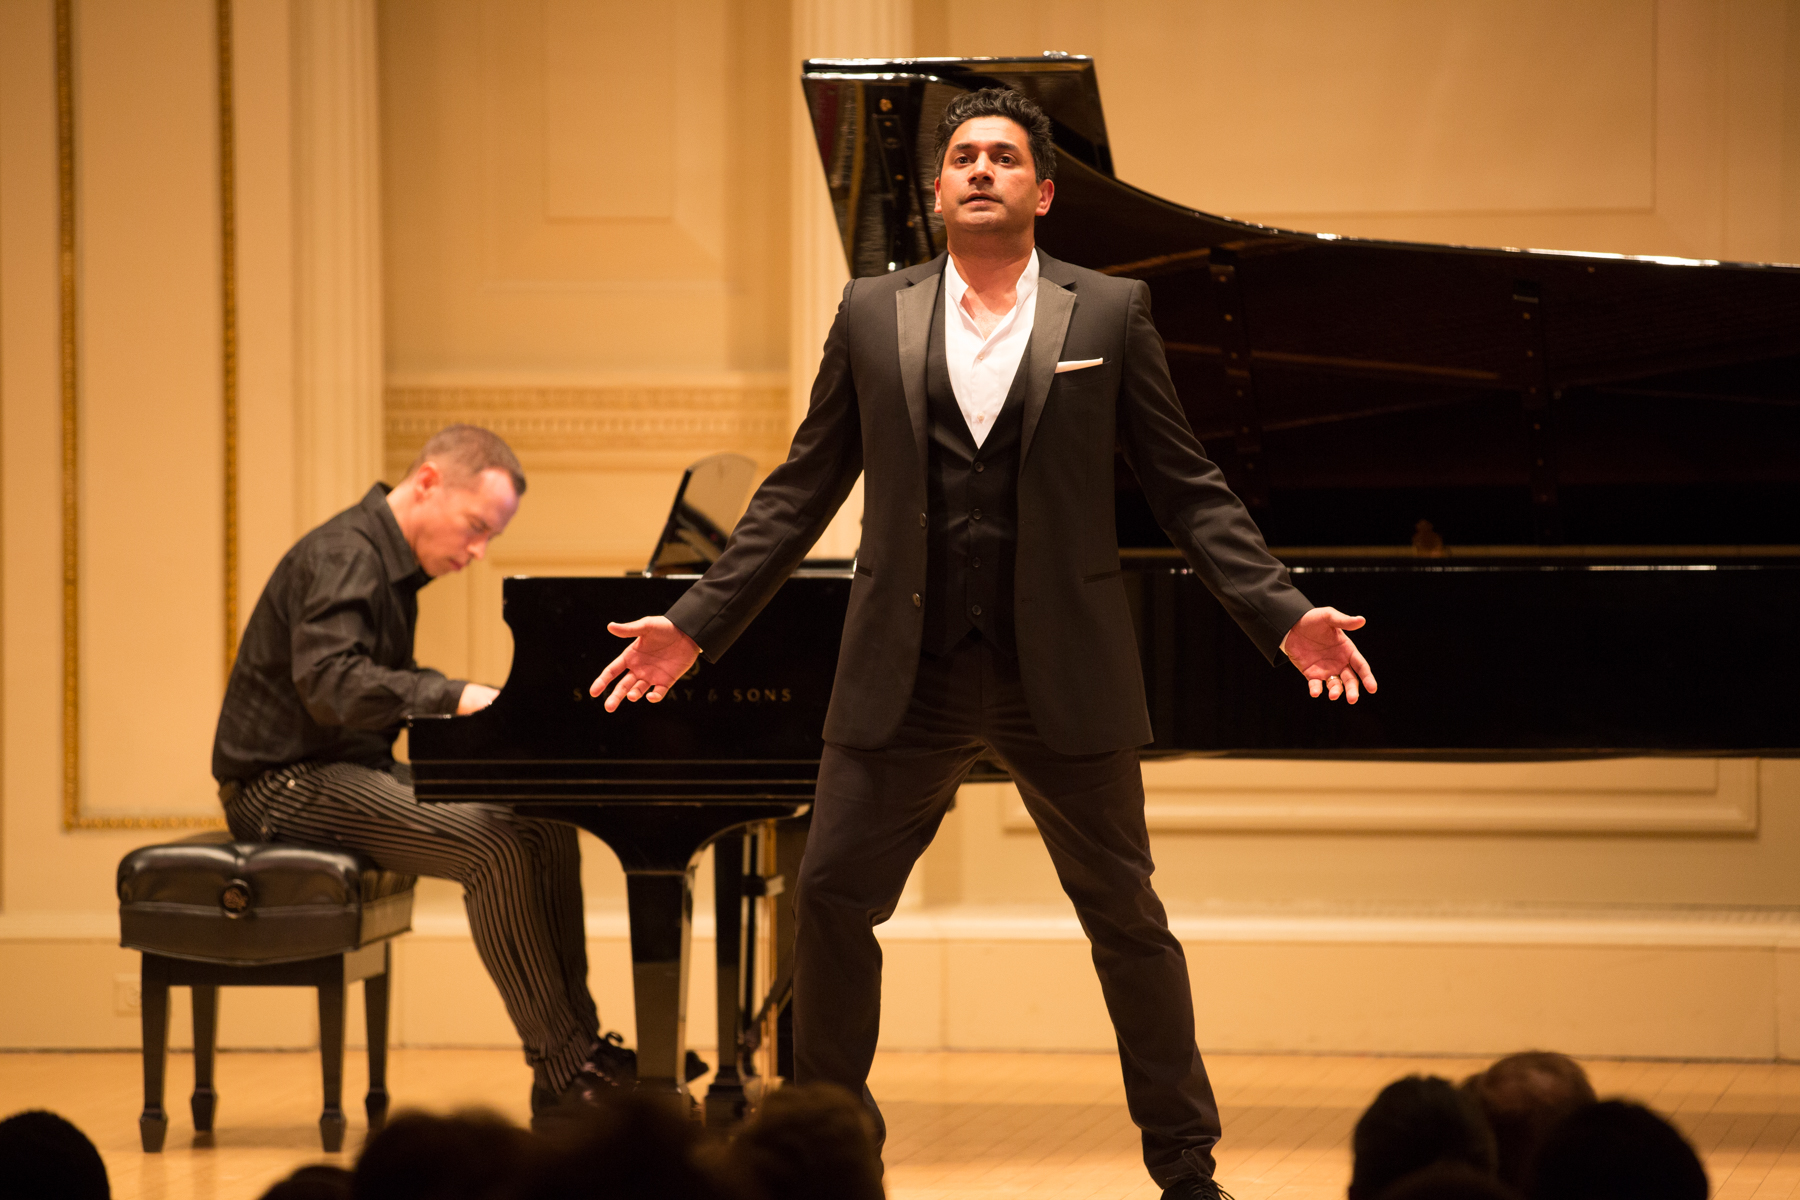 ame-2018-carnegie-hall-vocal-music-of-robert-paterson_G9A7893.jpg